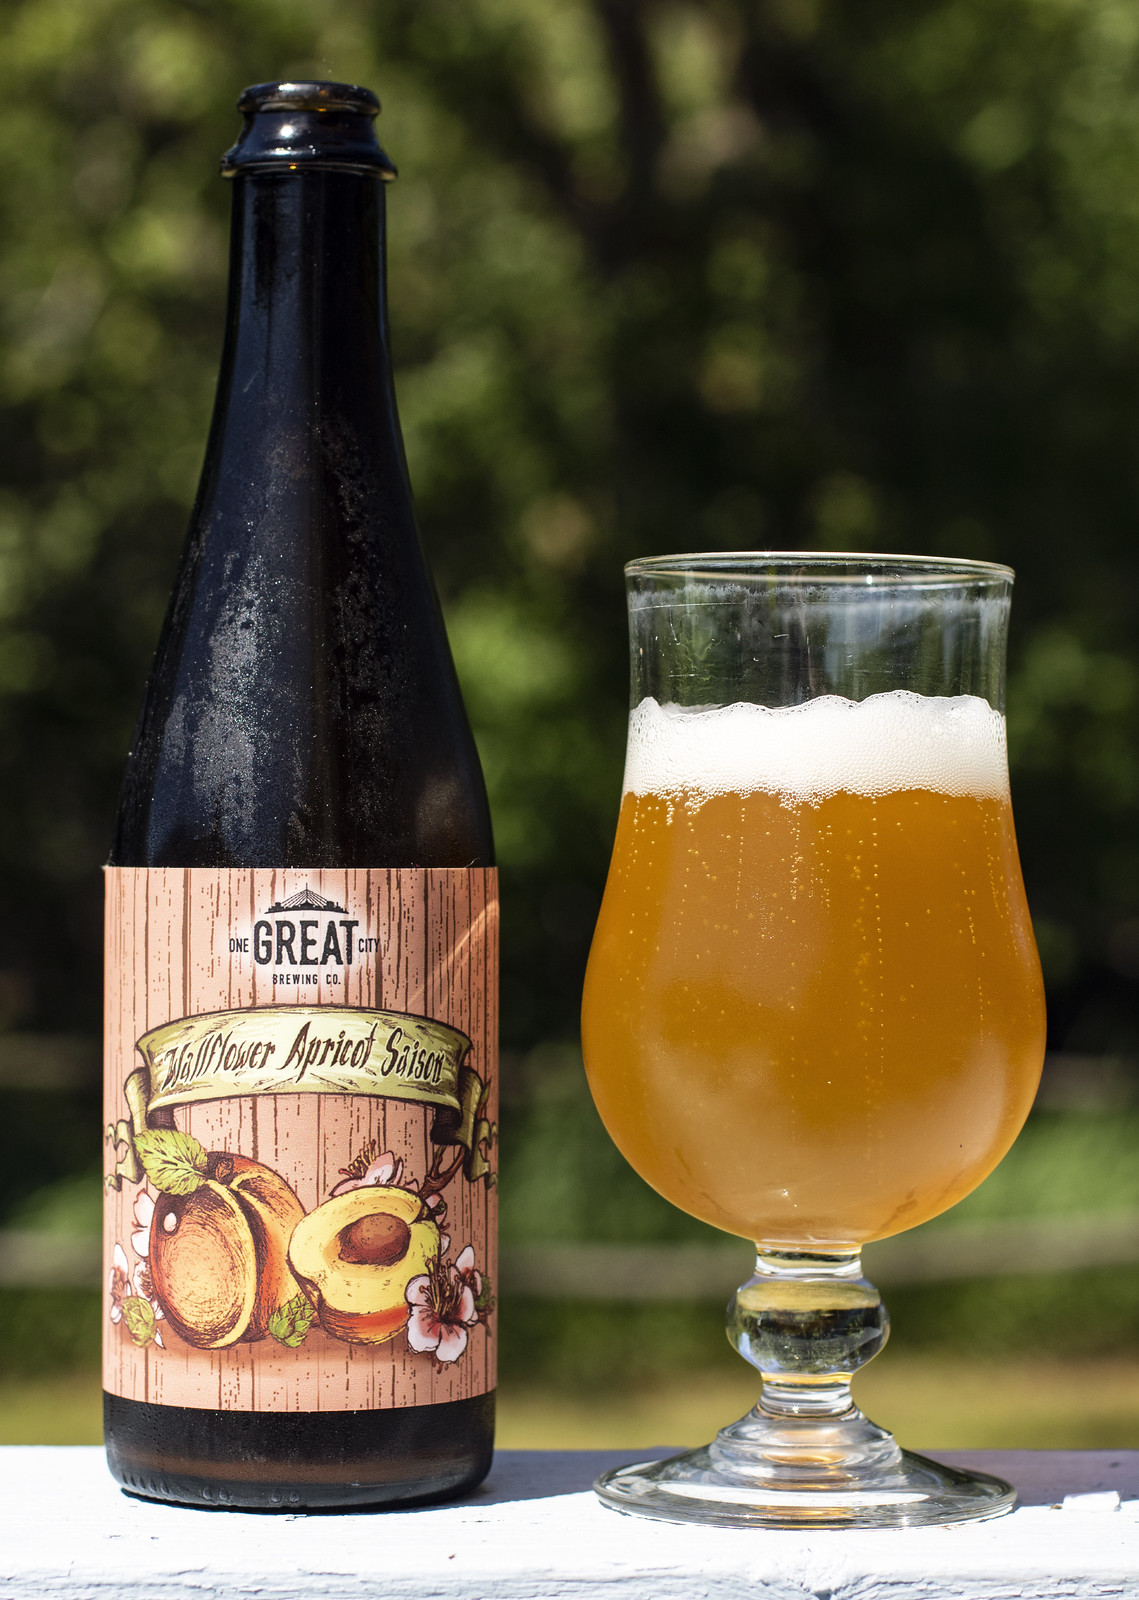 One Great City Wallflower Apricot Saison